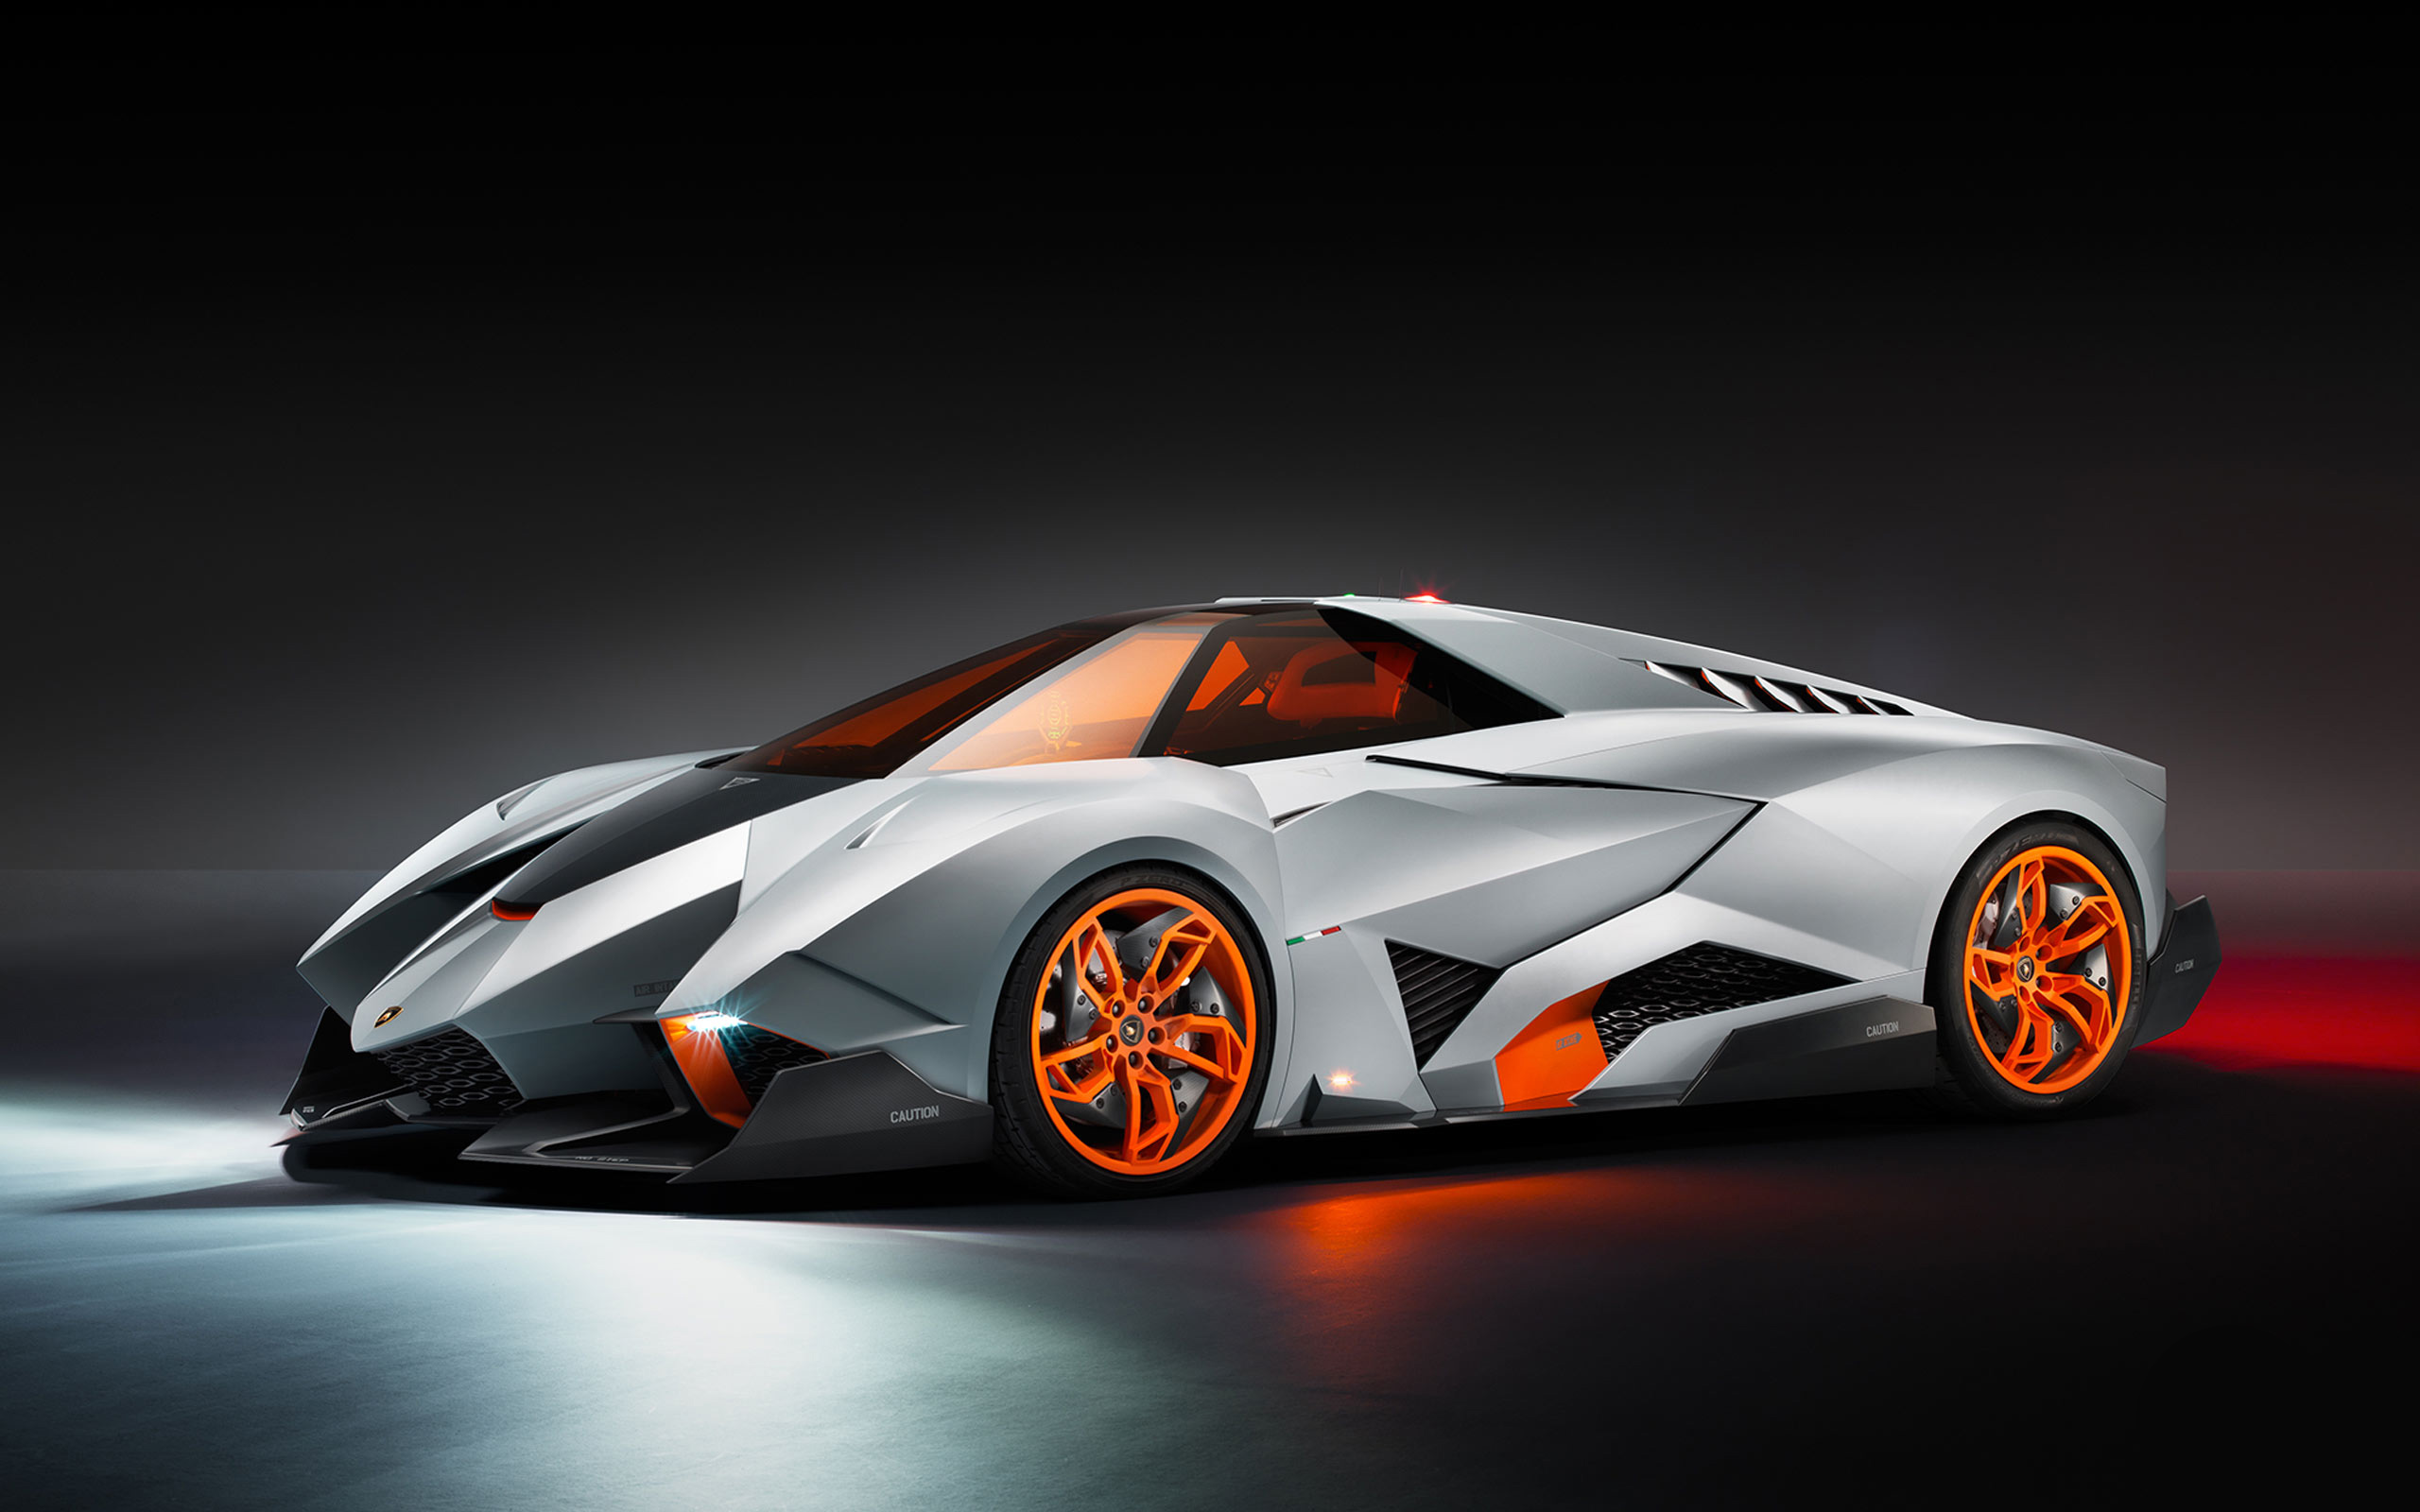 Lamborghini Egoista Concept Car Wallpapers HD Wallpapers 2560x1600